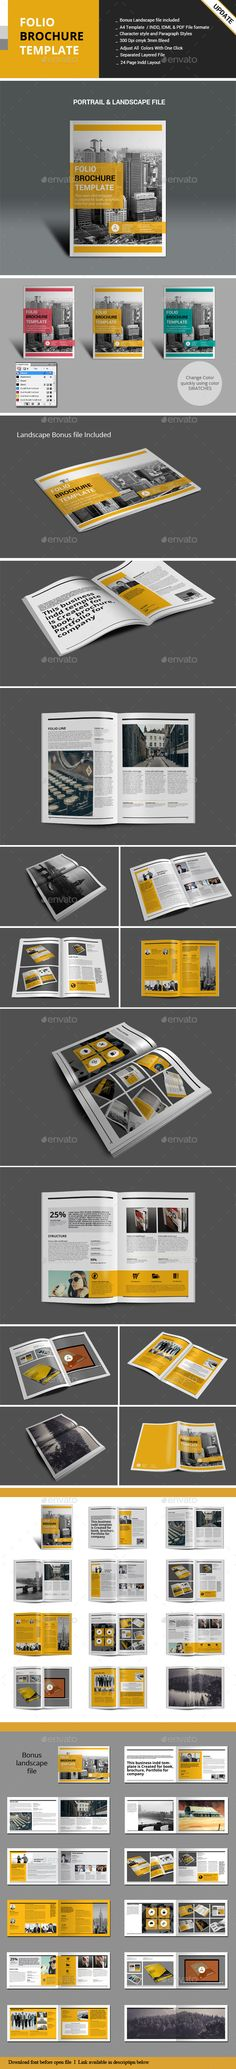 Folio Brochure Templates  —  InDesign Template • Only available here! → https://graphicriver.net/item/folio-brochure-templates/9337923?ref=pxcr